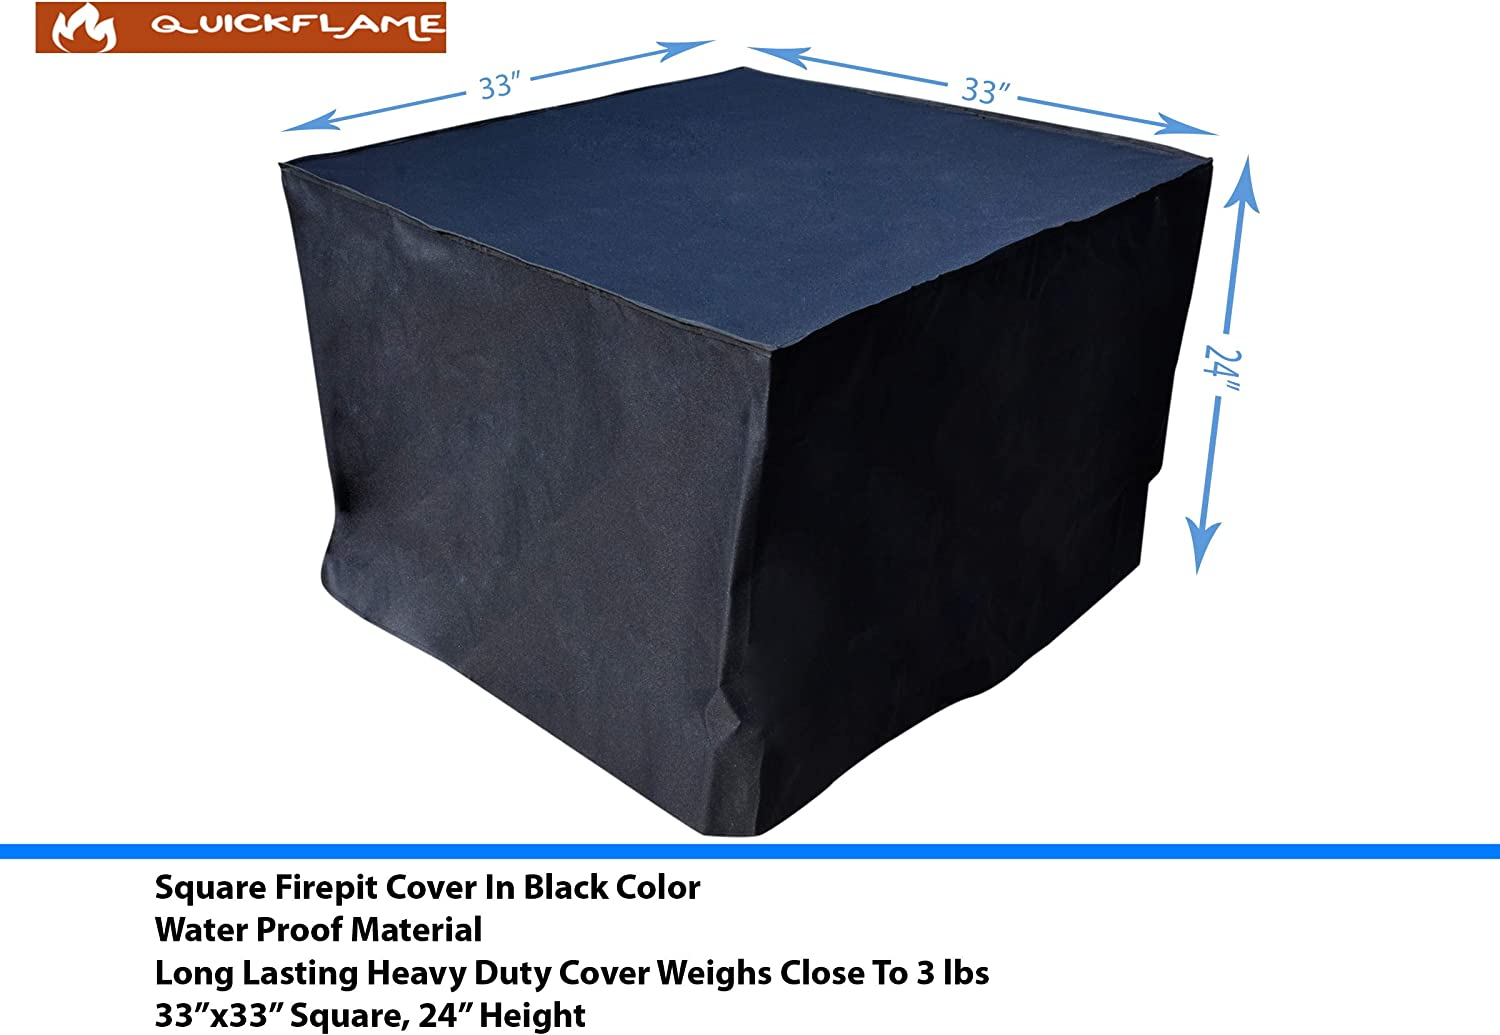 Amazon Com Quickflame Gas Firepit Cover 32 Inches By 32 Inches Black Garden Outdoor